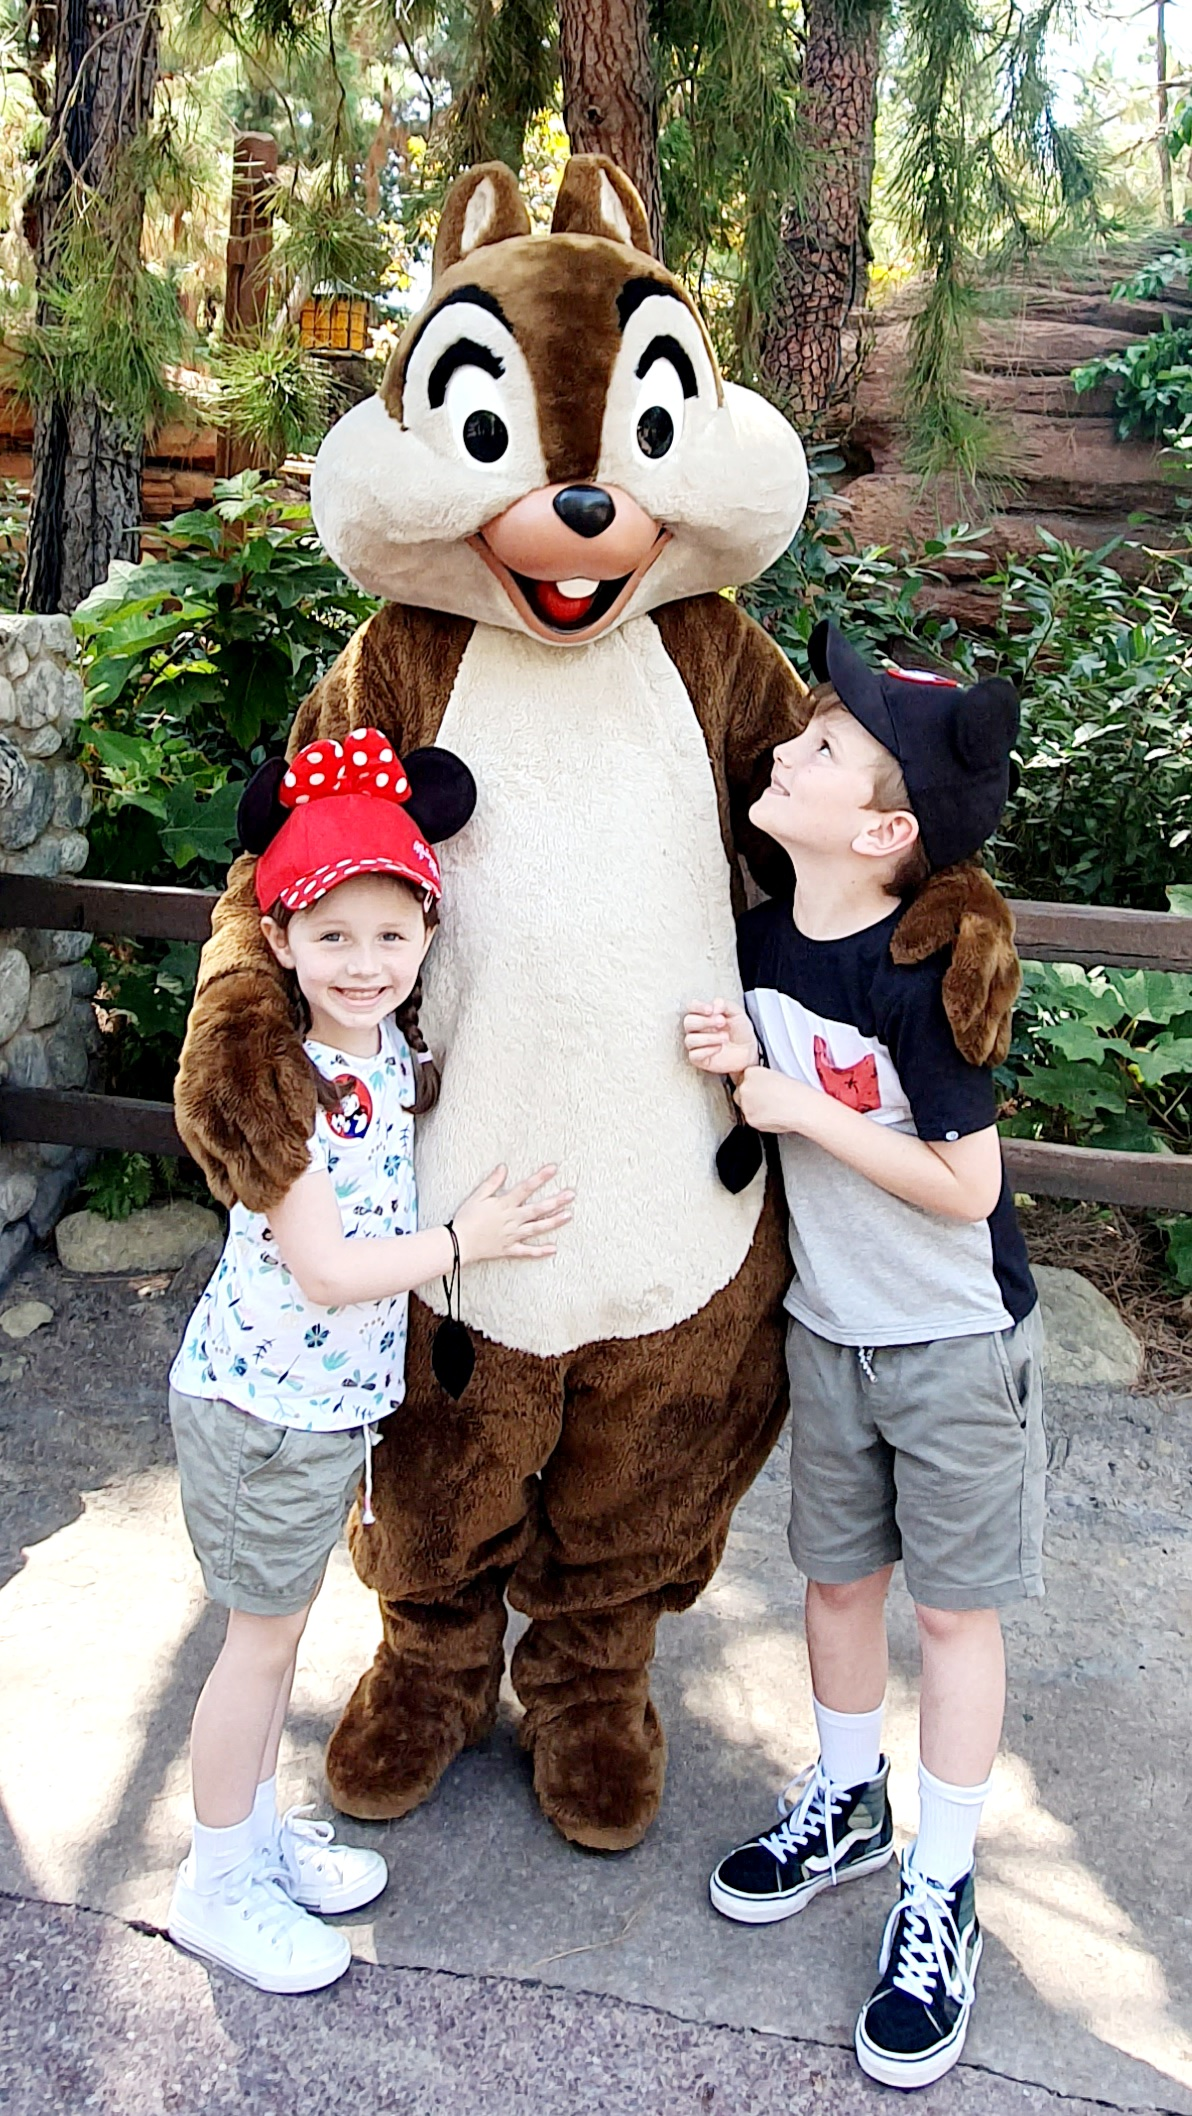 California Adventure Photo Spots - Disney Character Meet and Greets